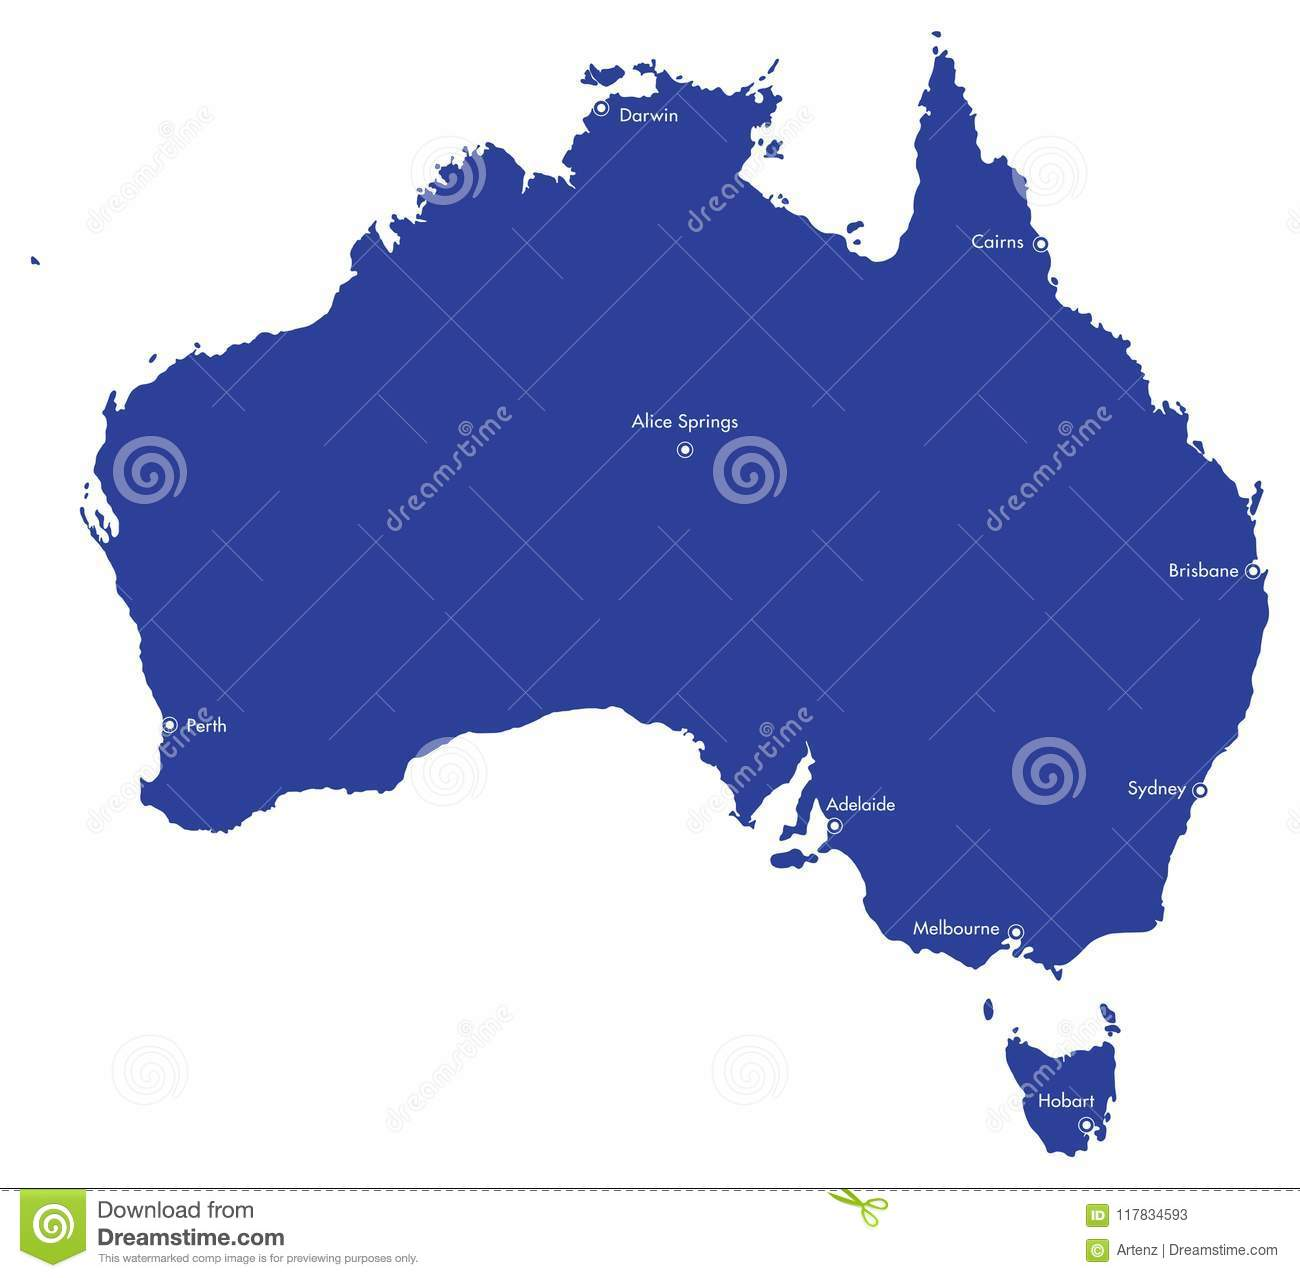 Australia Map With Cities.Map Of Australia With Cities Stock Illustration Illustration Of